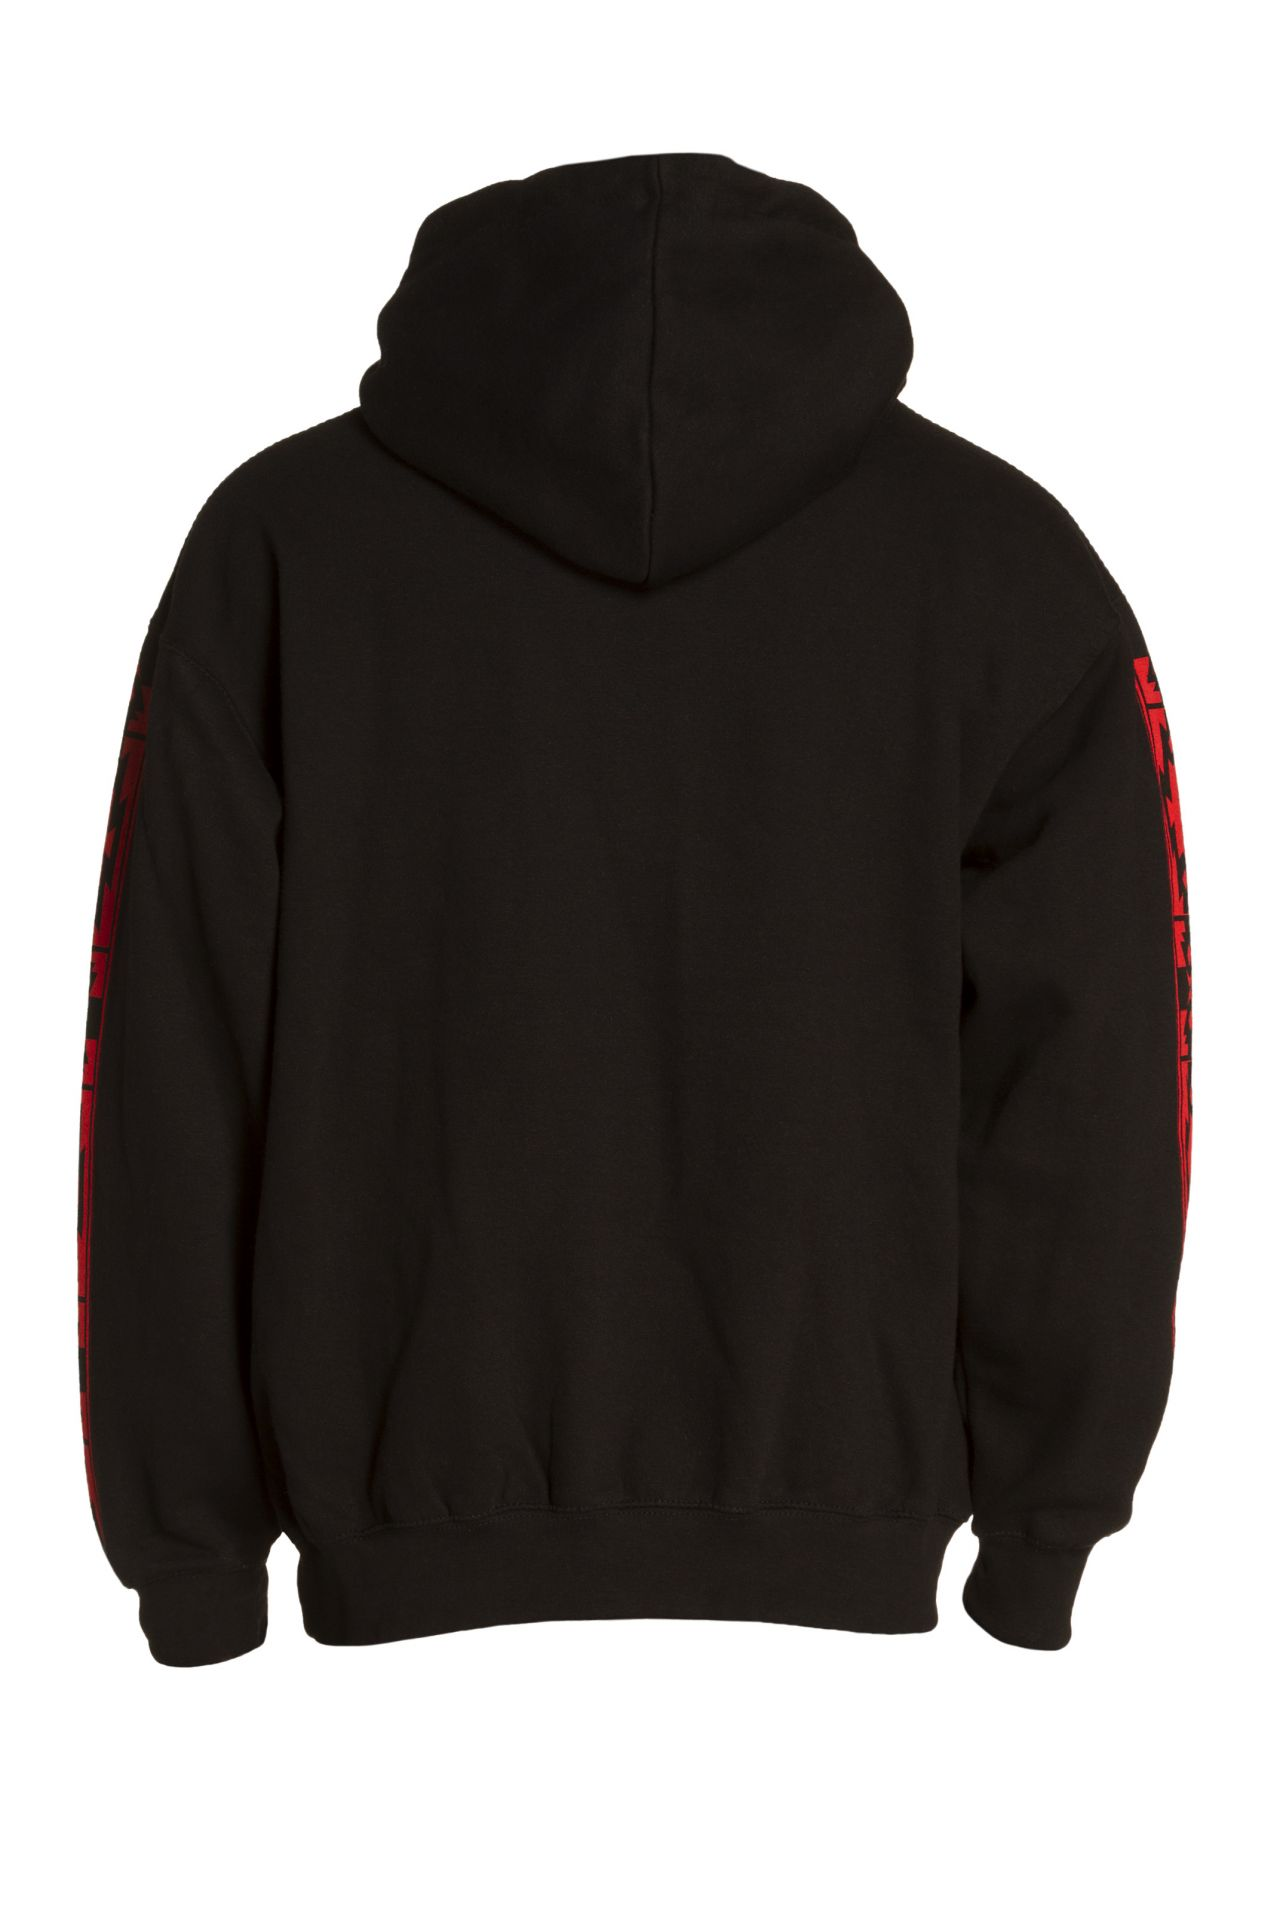 DRESSED UP PULLOVER HOODIE WITH CRYSTALS IN BLACK